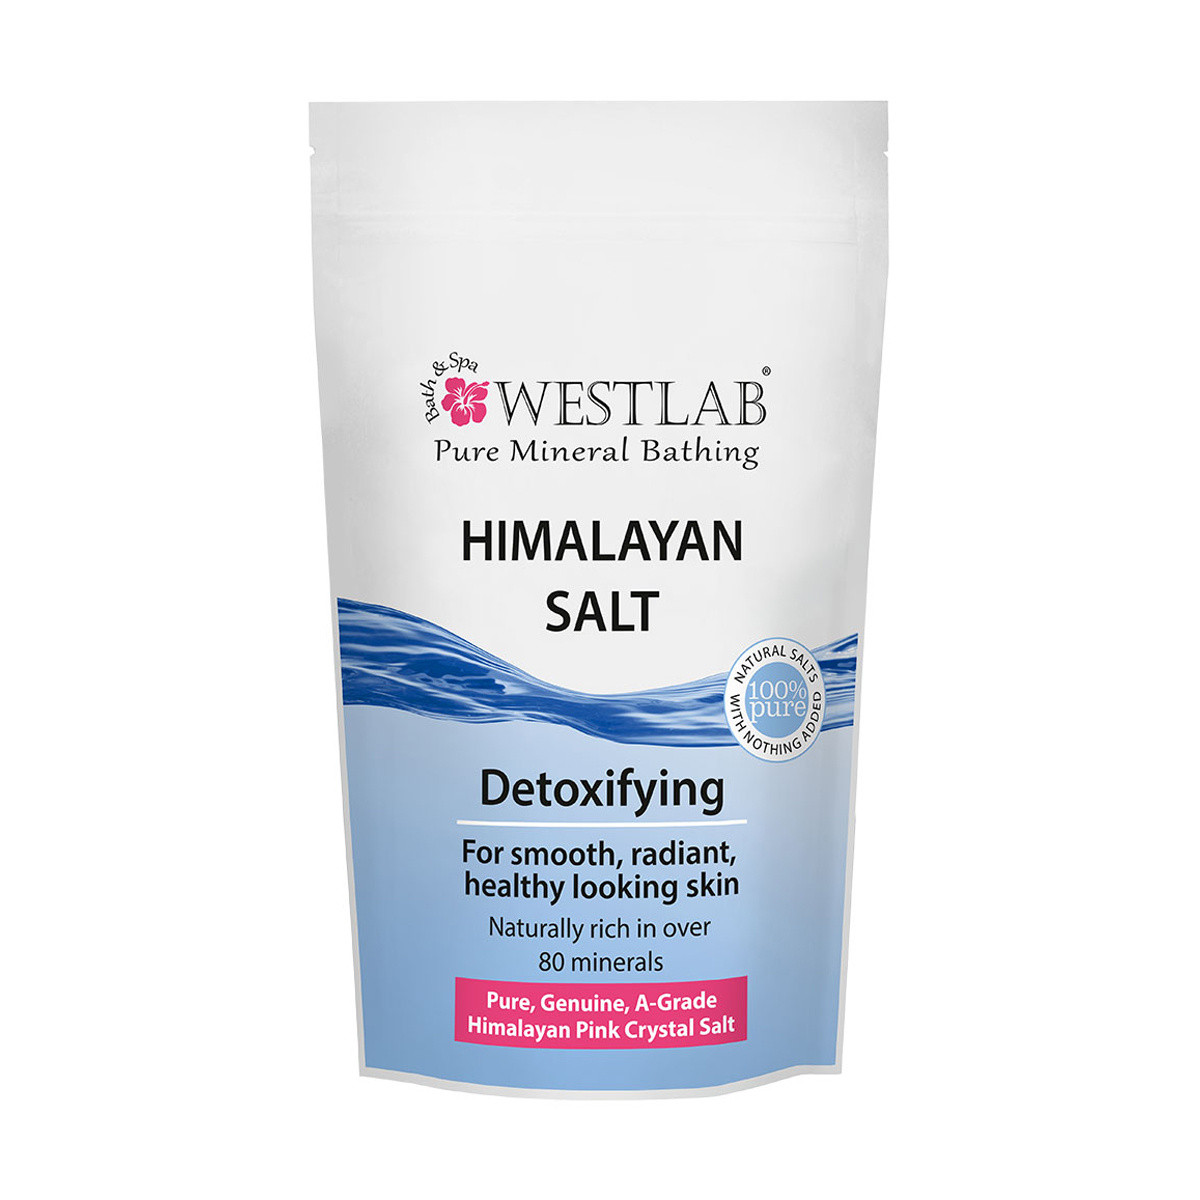 Westlab Pure Mineral Bathing Himalayan Salt